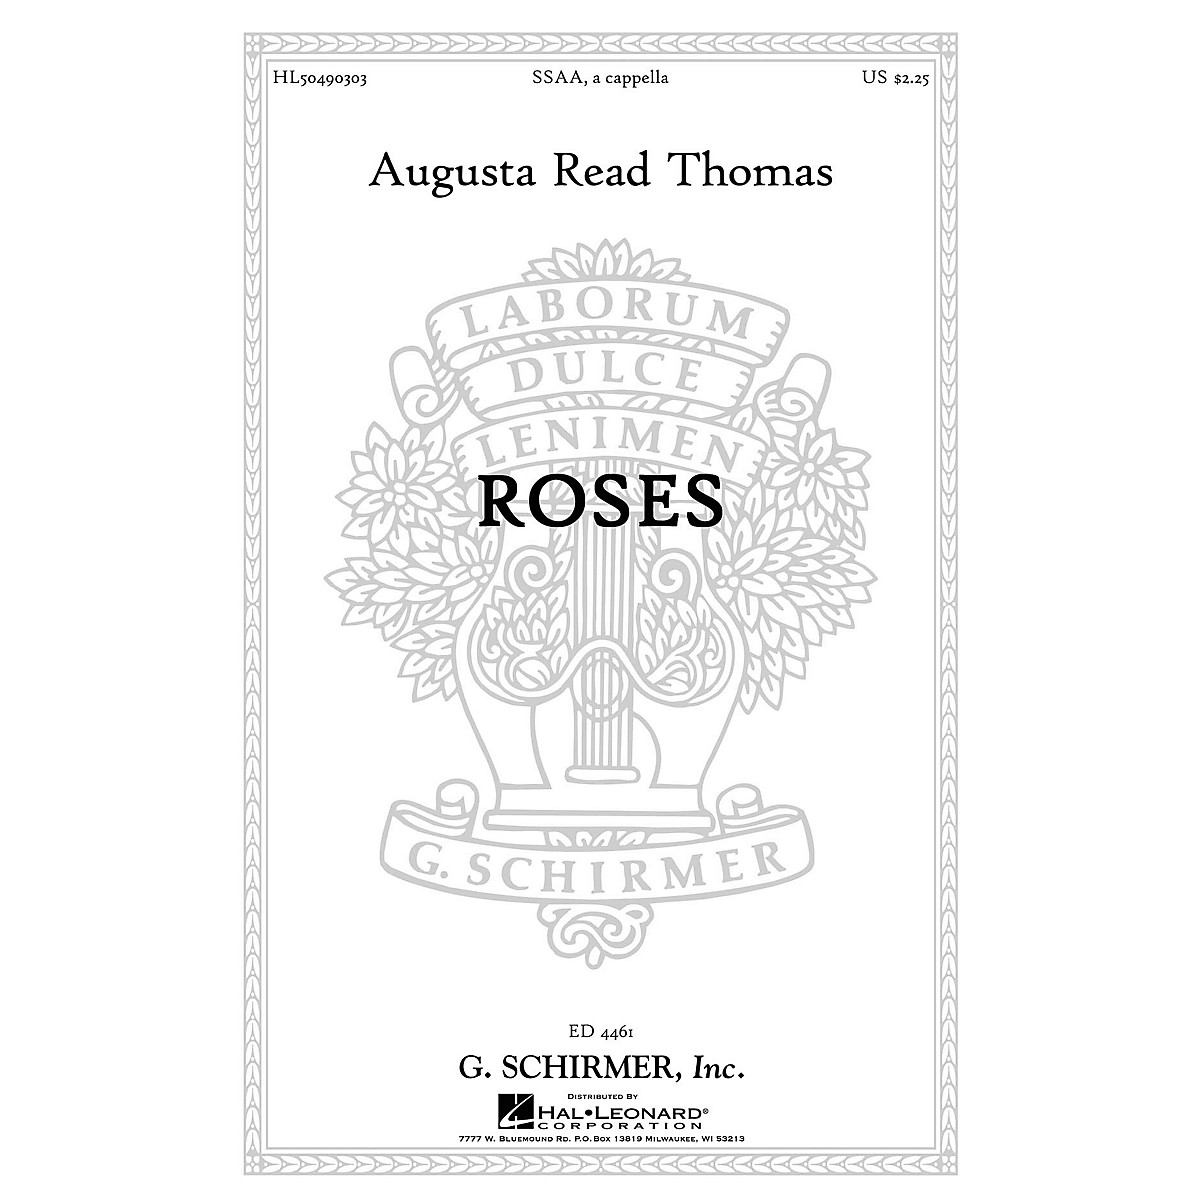 G. Schirmer Roses SSAA A Cappella composed by Augusta Read Thomas